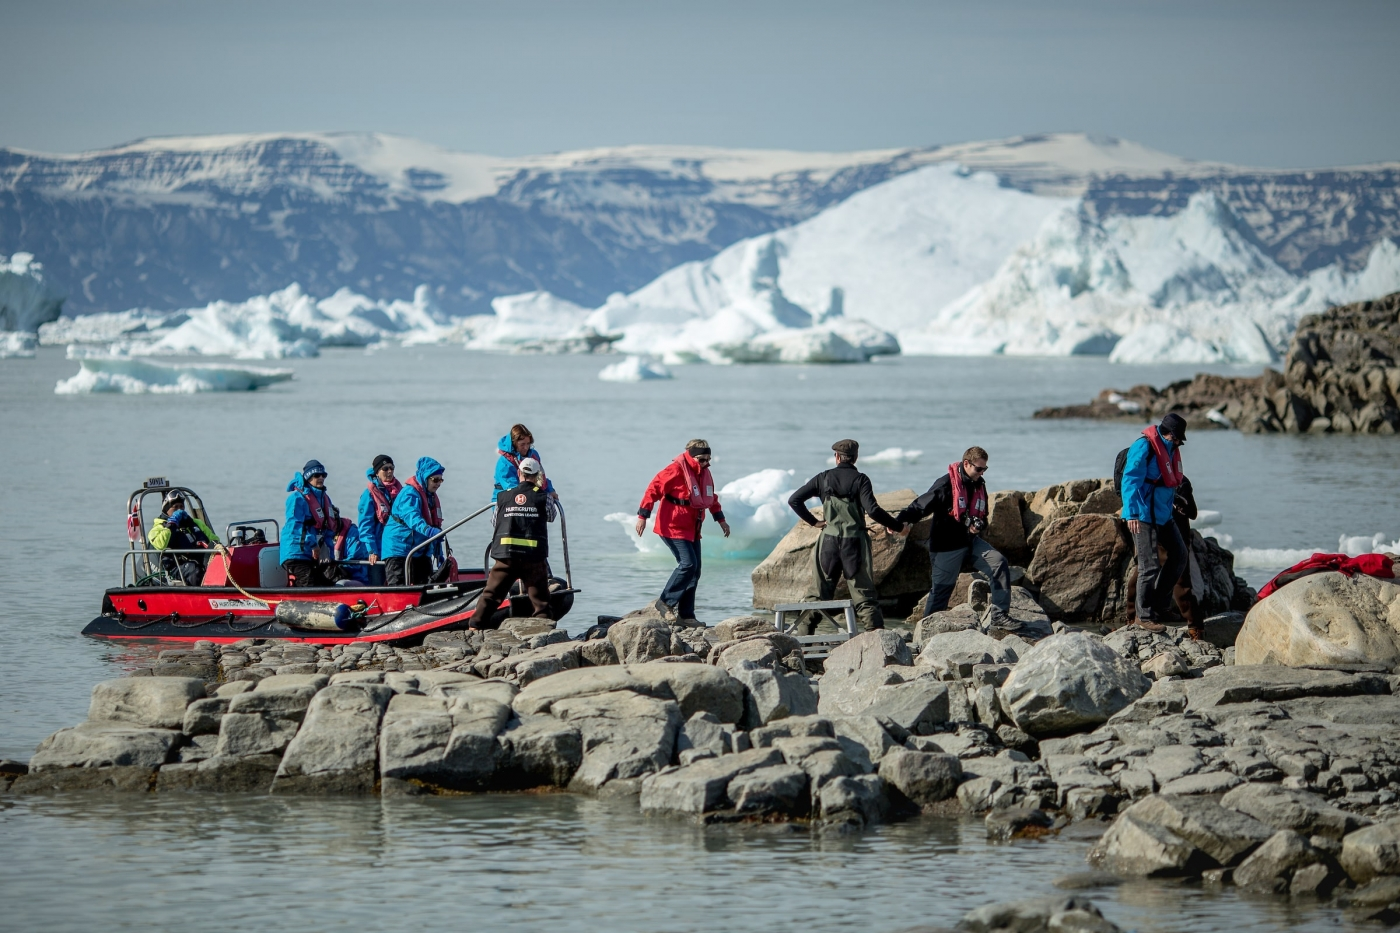 A nature landing with MS Fram near Saqqaq in Greenland. By Mads Pihl